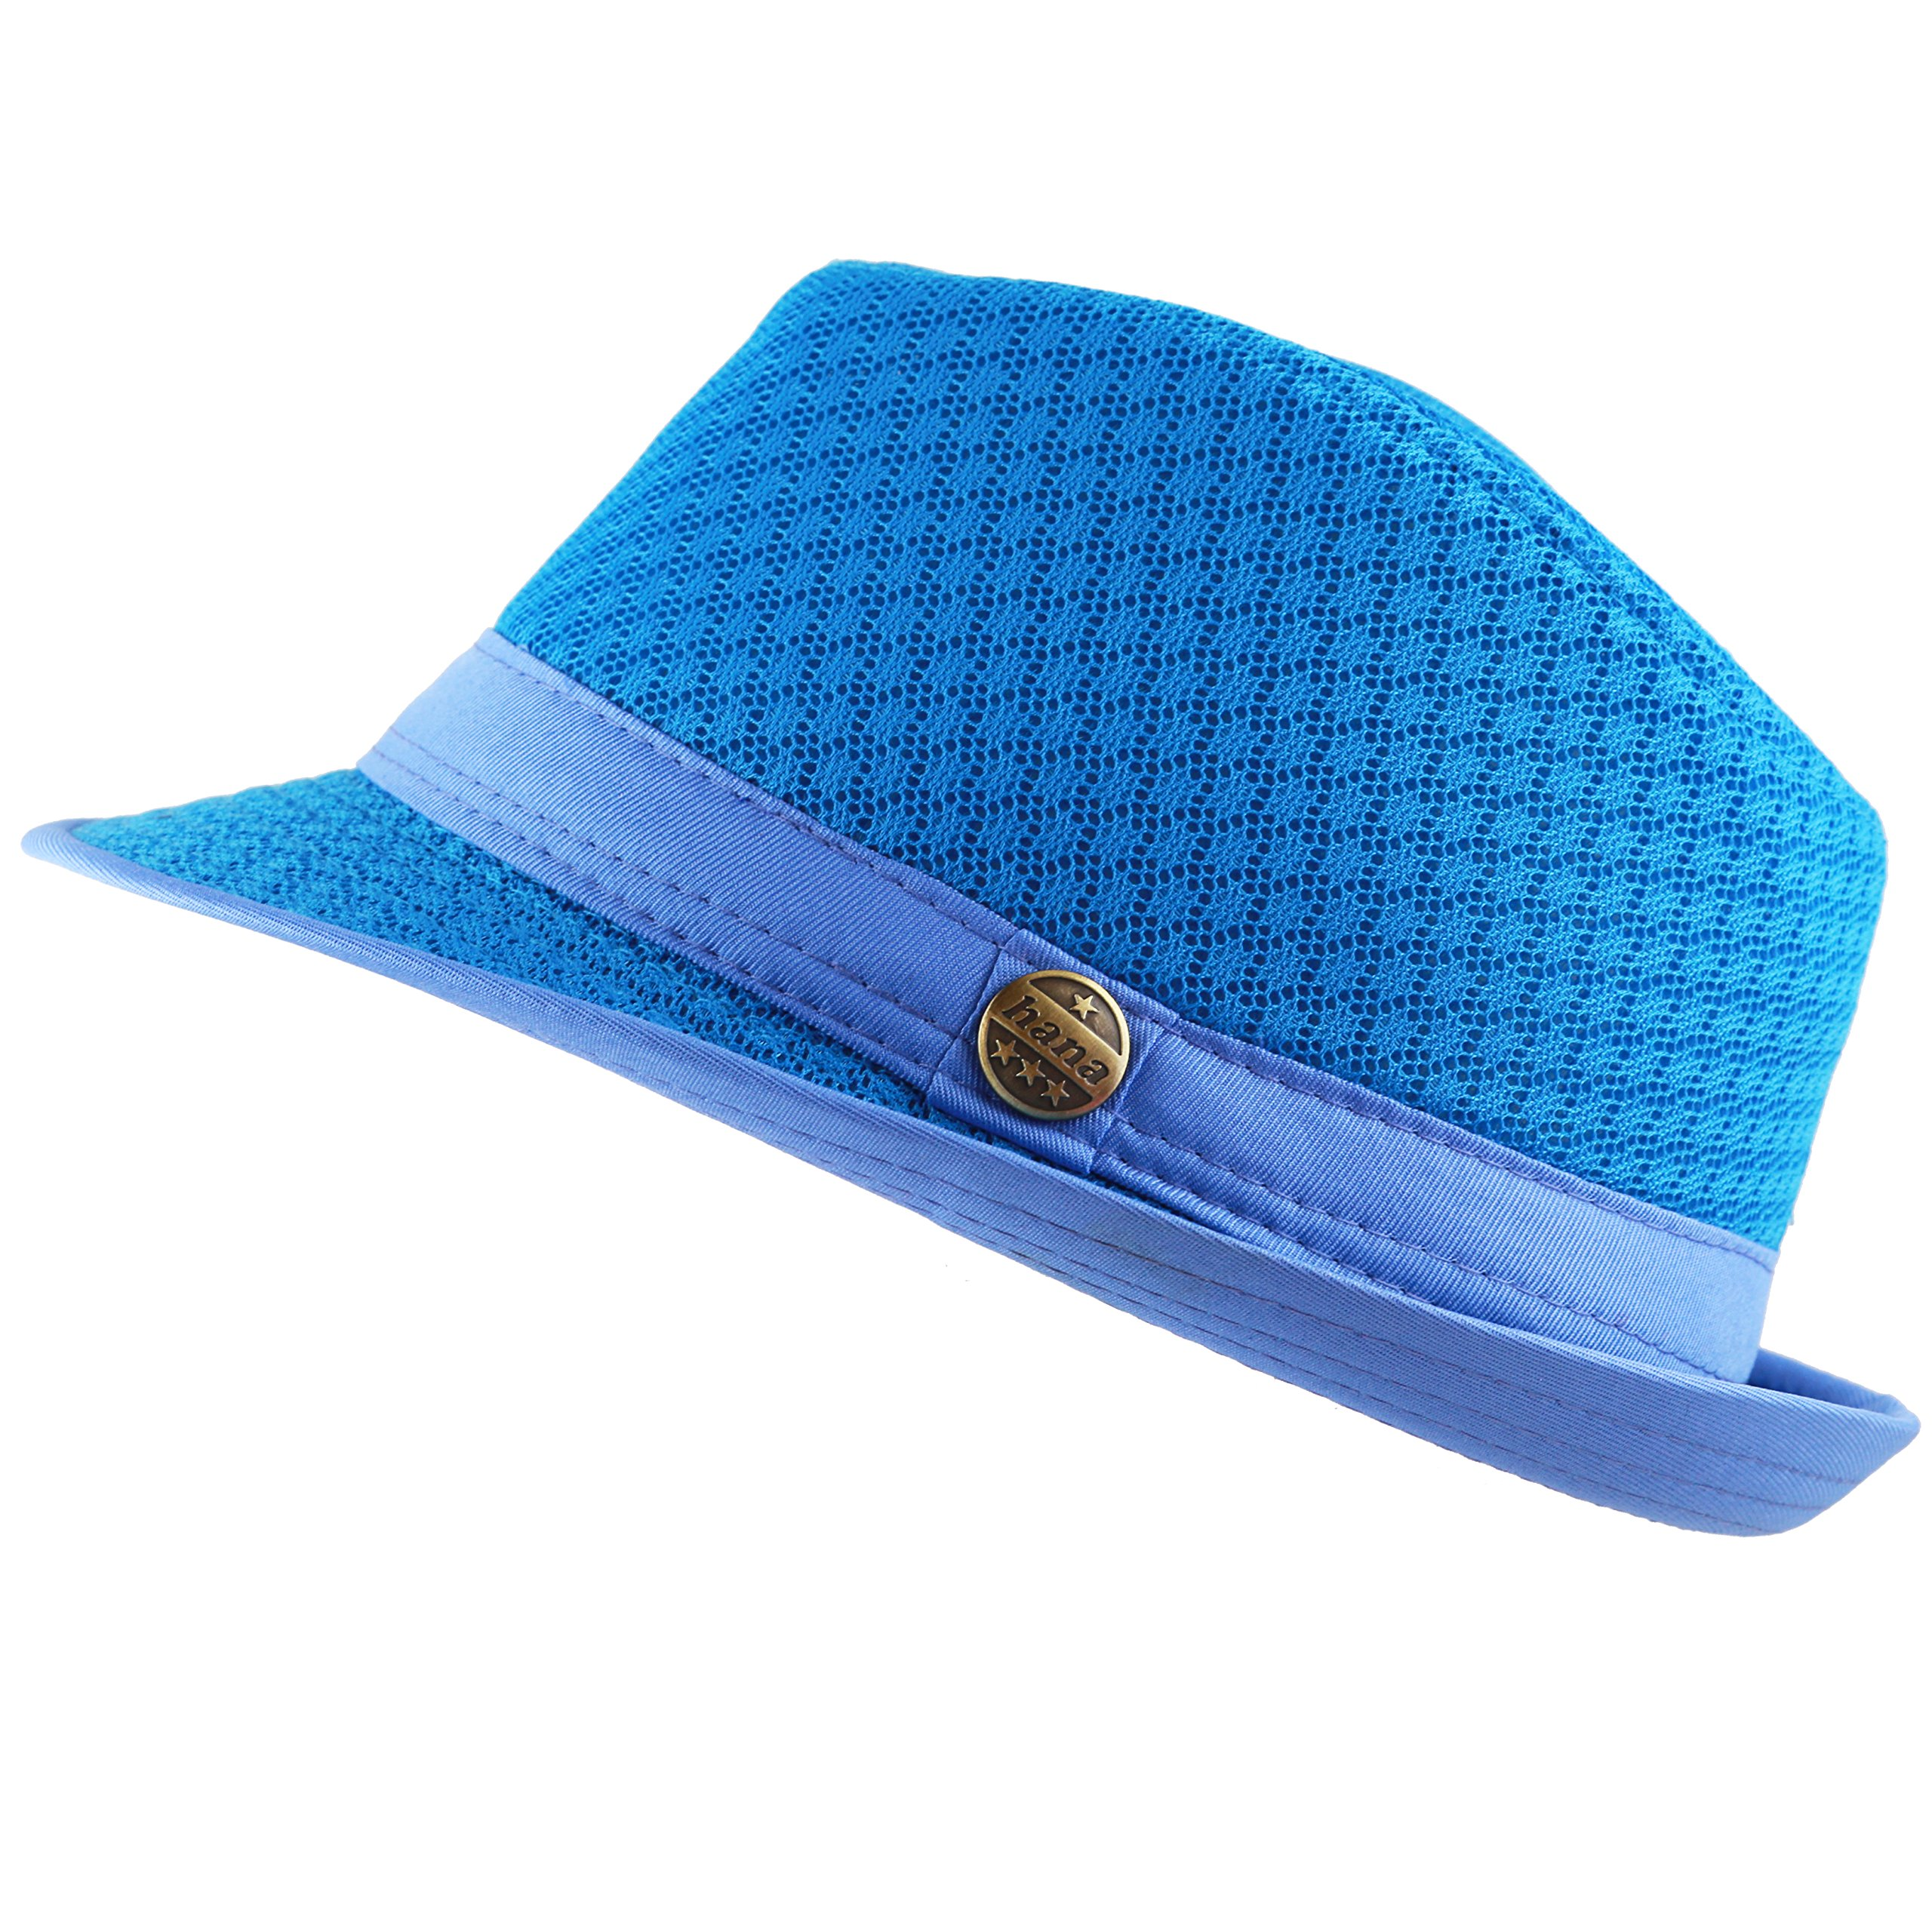 THE HAT DEPOT 200G1015 Light Weight Classic Soft Cool Mesh Fedora hat (L/XL, Turquoise)